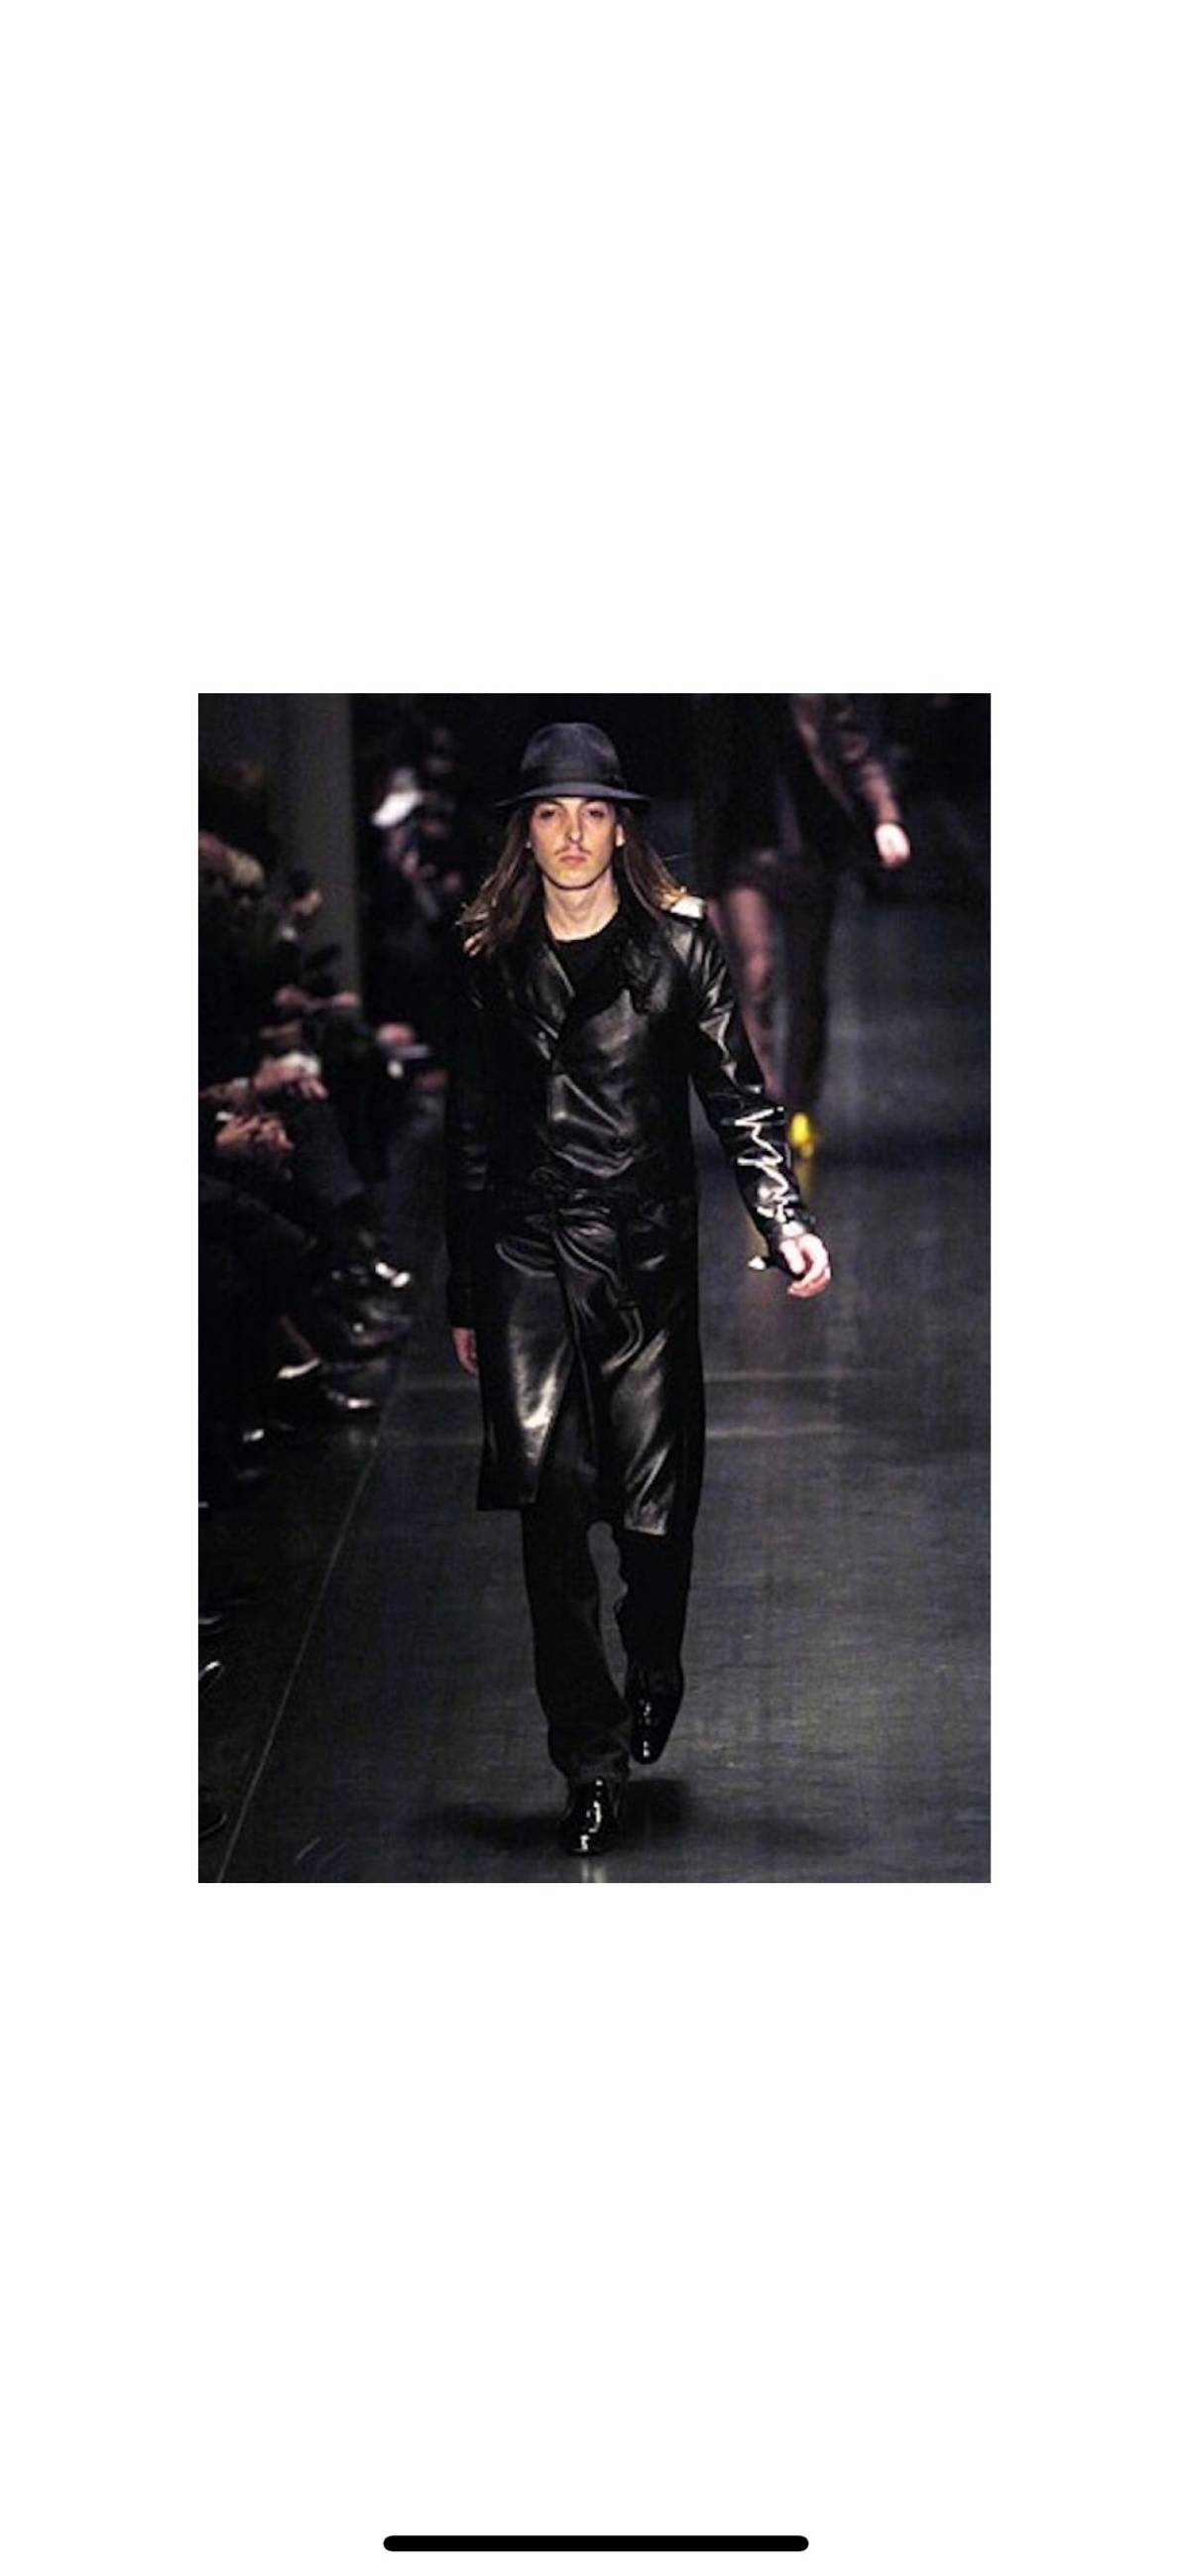 130327b25f Dior Dior Homme Leather Jacket Runway Size m - Leather Jackets for Sale -  Grailed